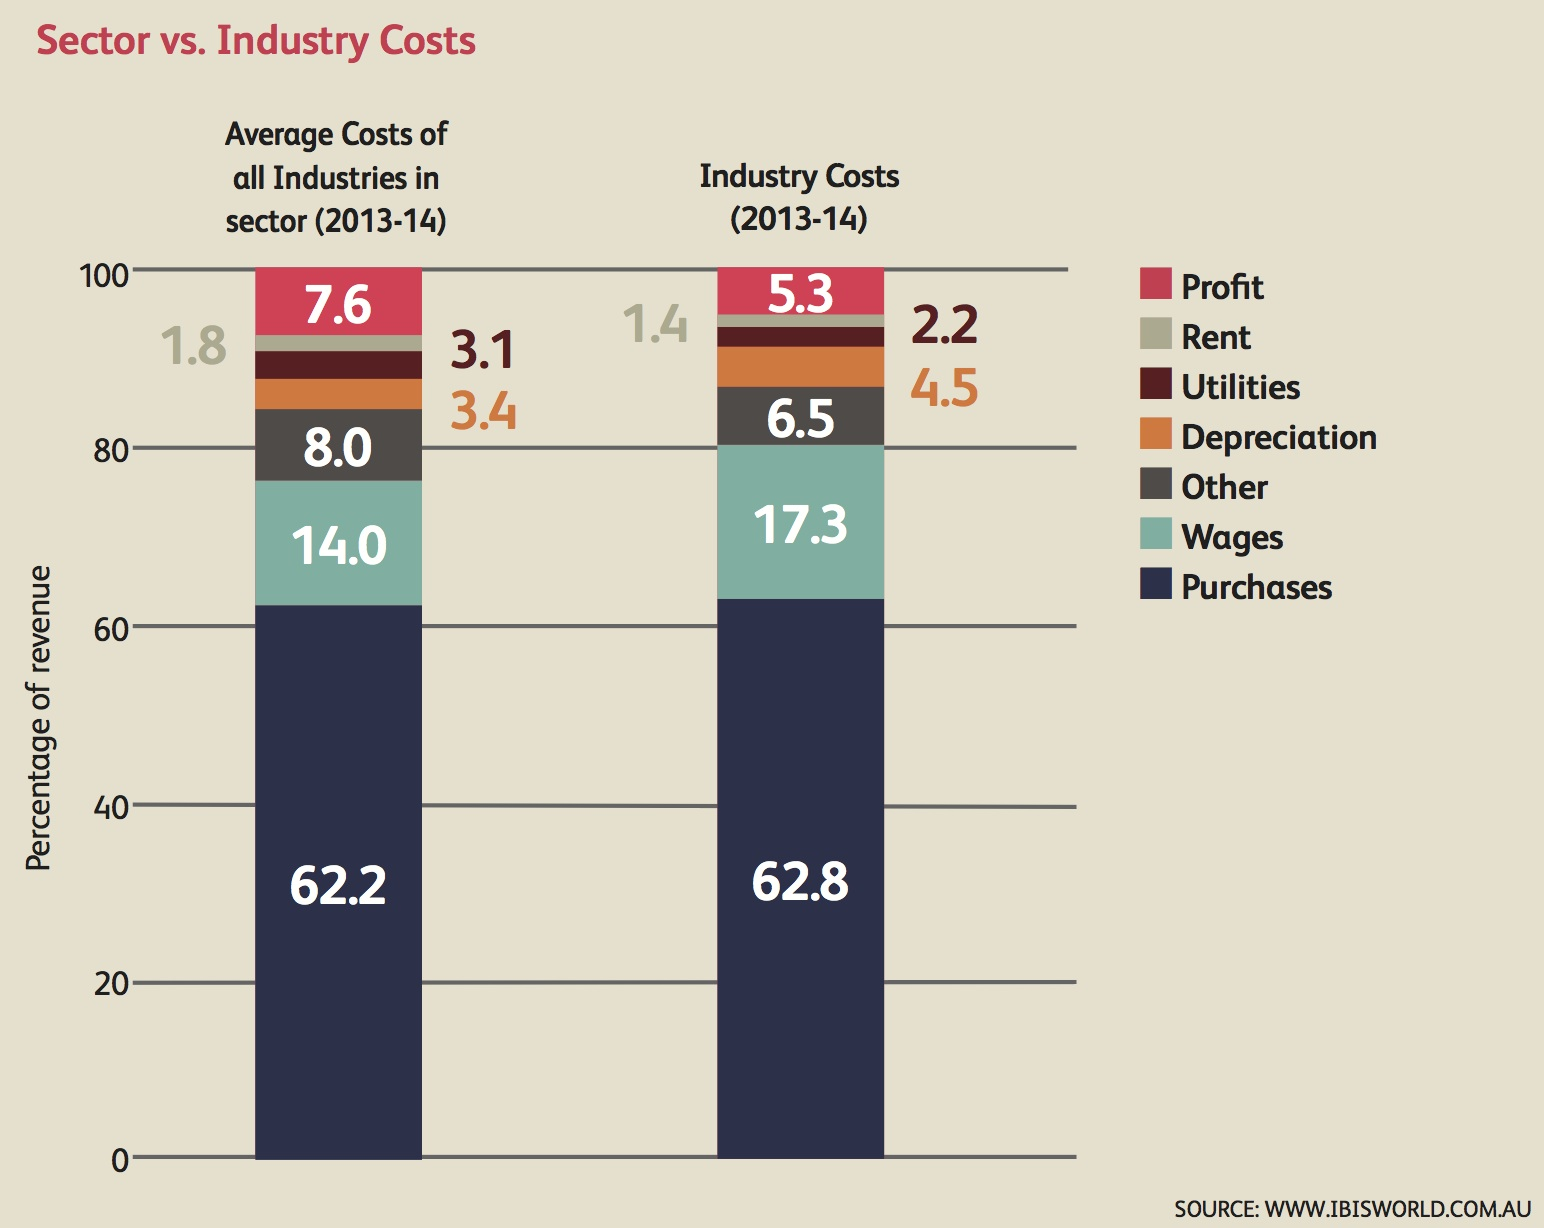 Figure 1: Wine sector costs vs Industry Costs (Lin 2013, p.24)